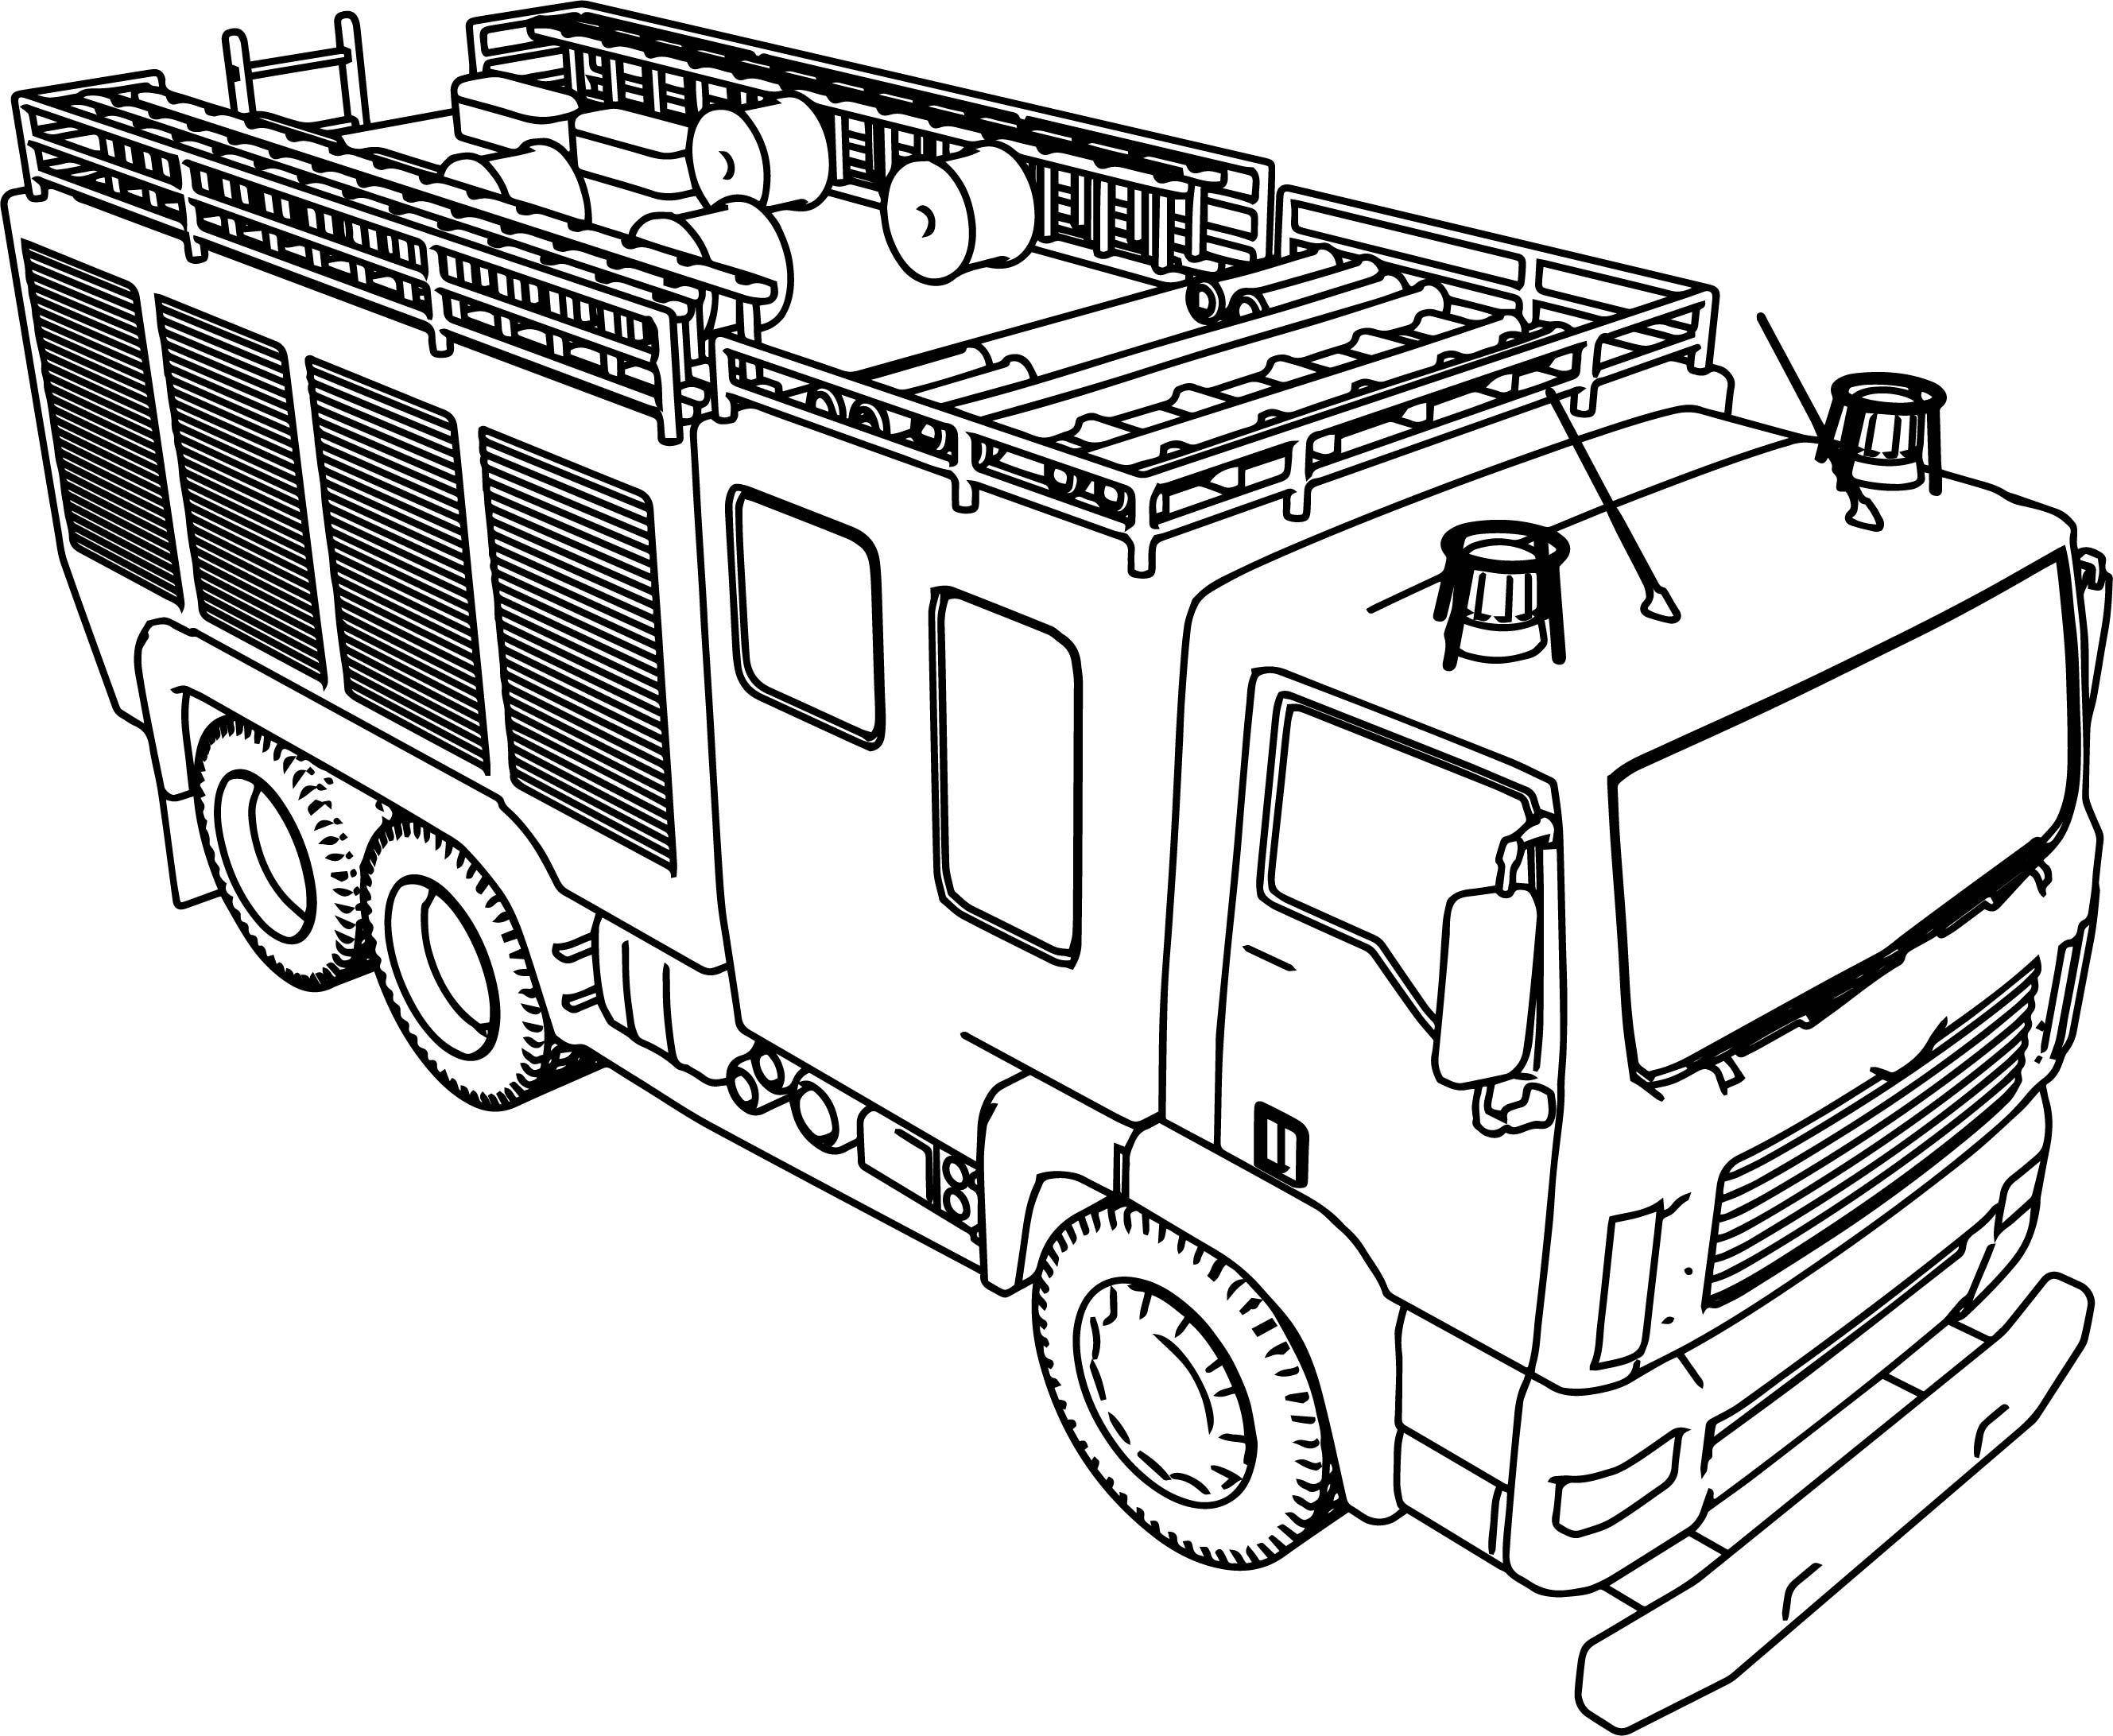 Awesome Big Fire Truck Coloring Page With Images Truck